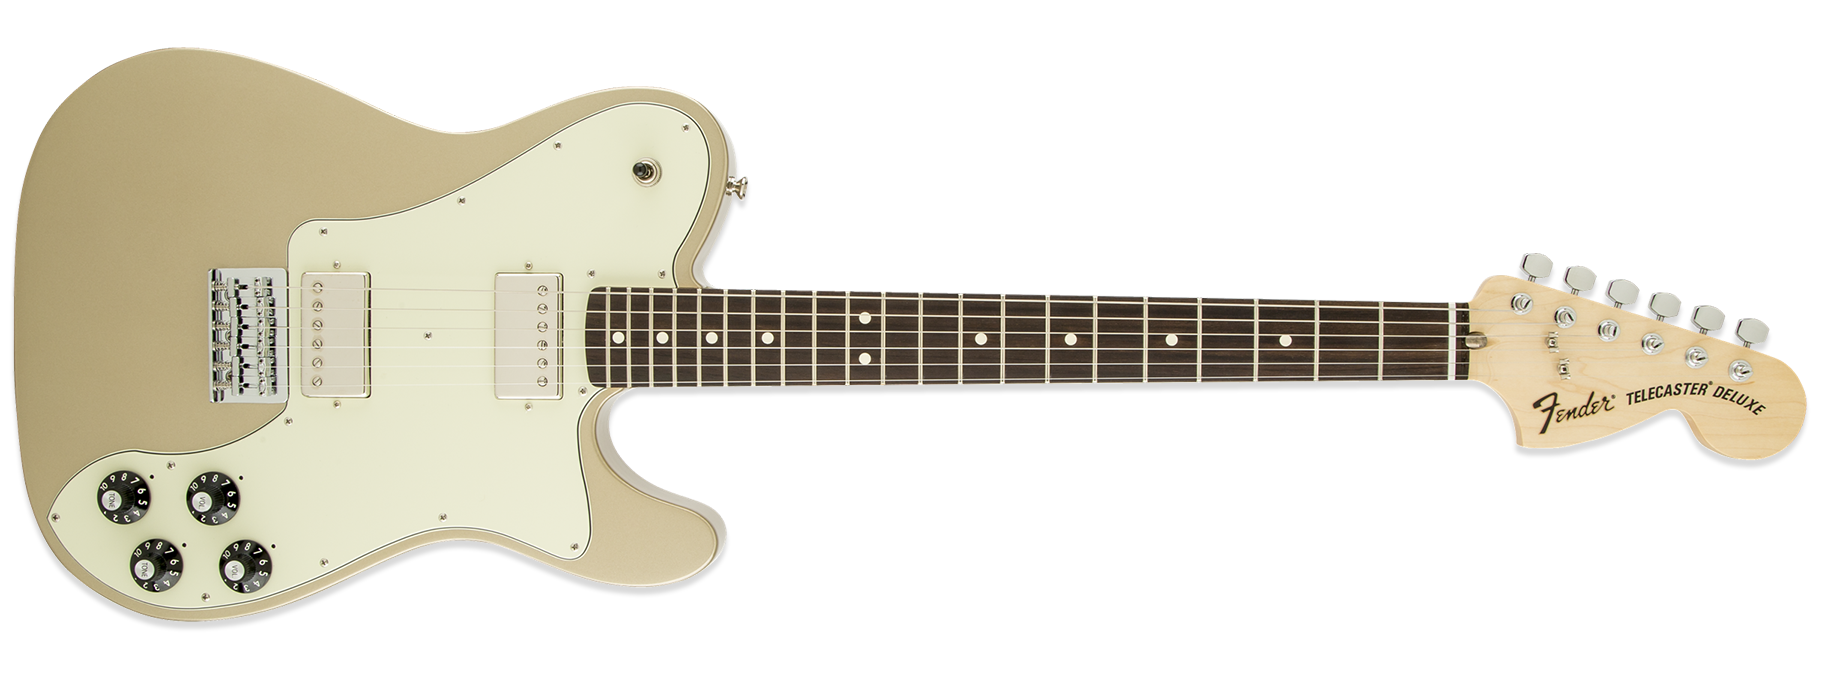 Fender Chris Shiflett Telecaster Deluxe Shoreline Gold